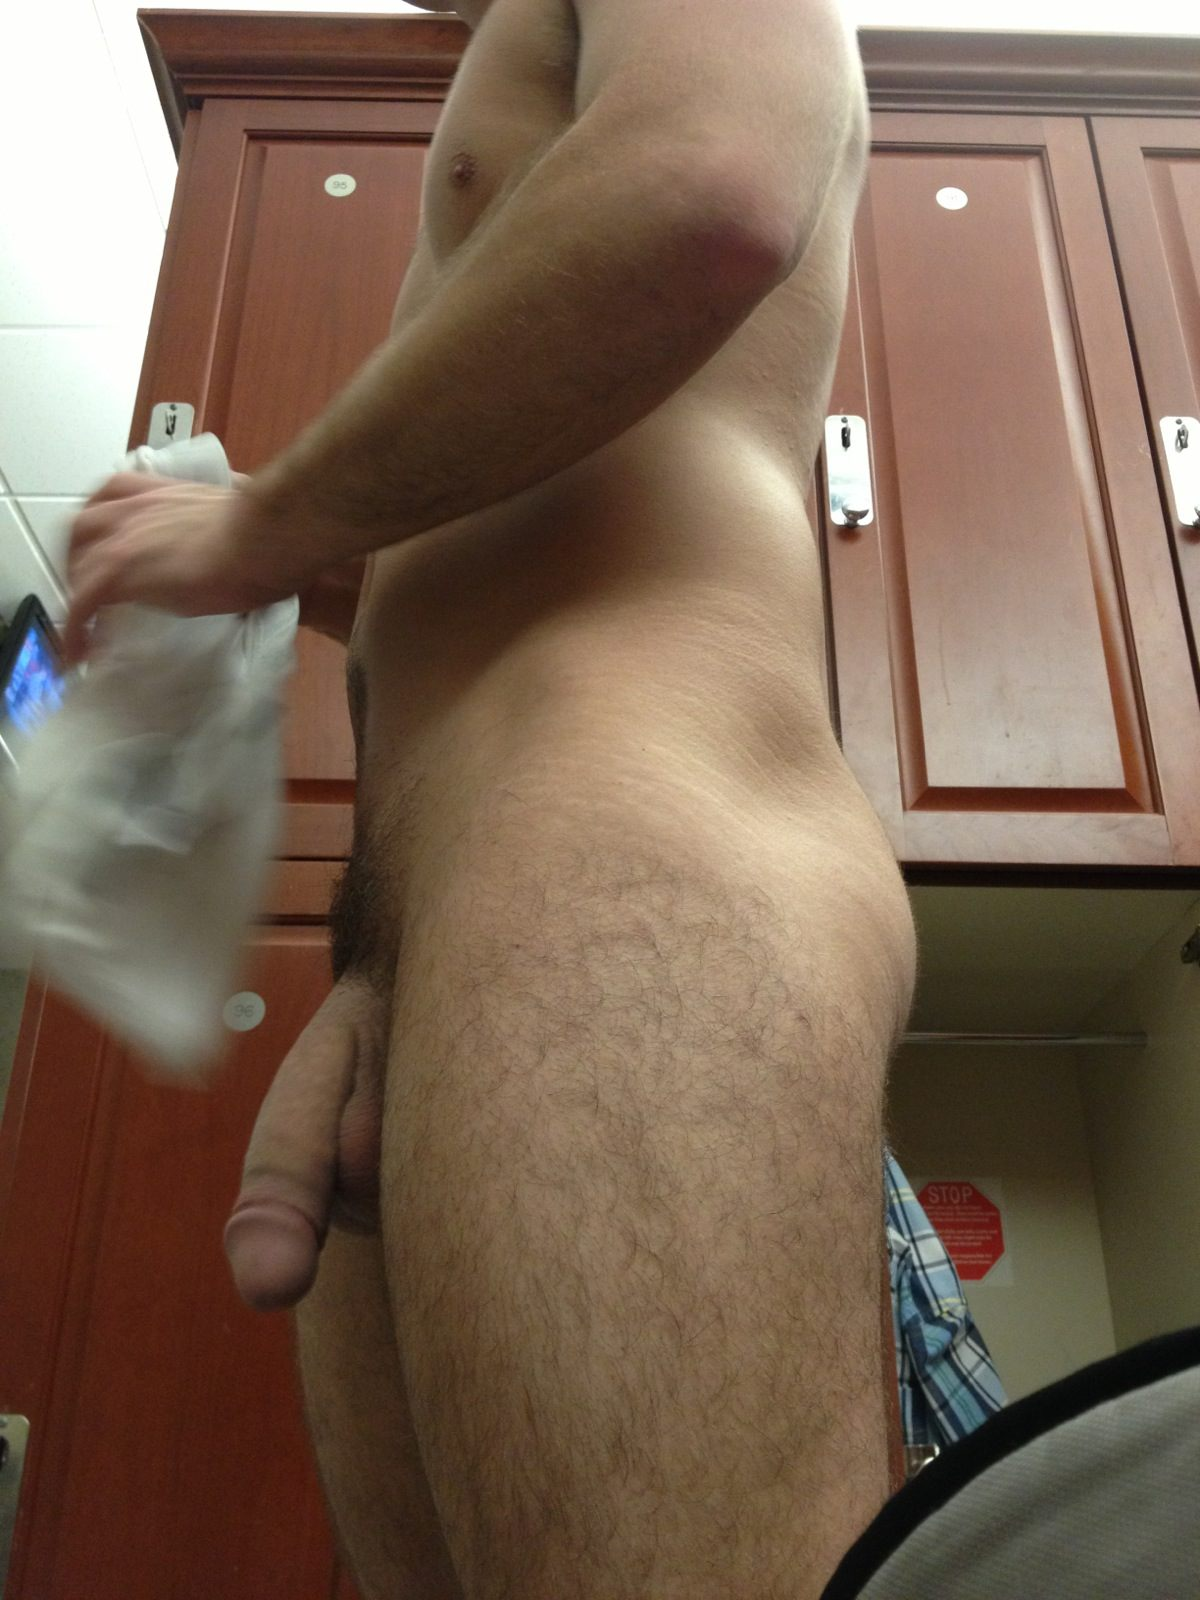 Guy At The Gym With A Nice Big Cock